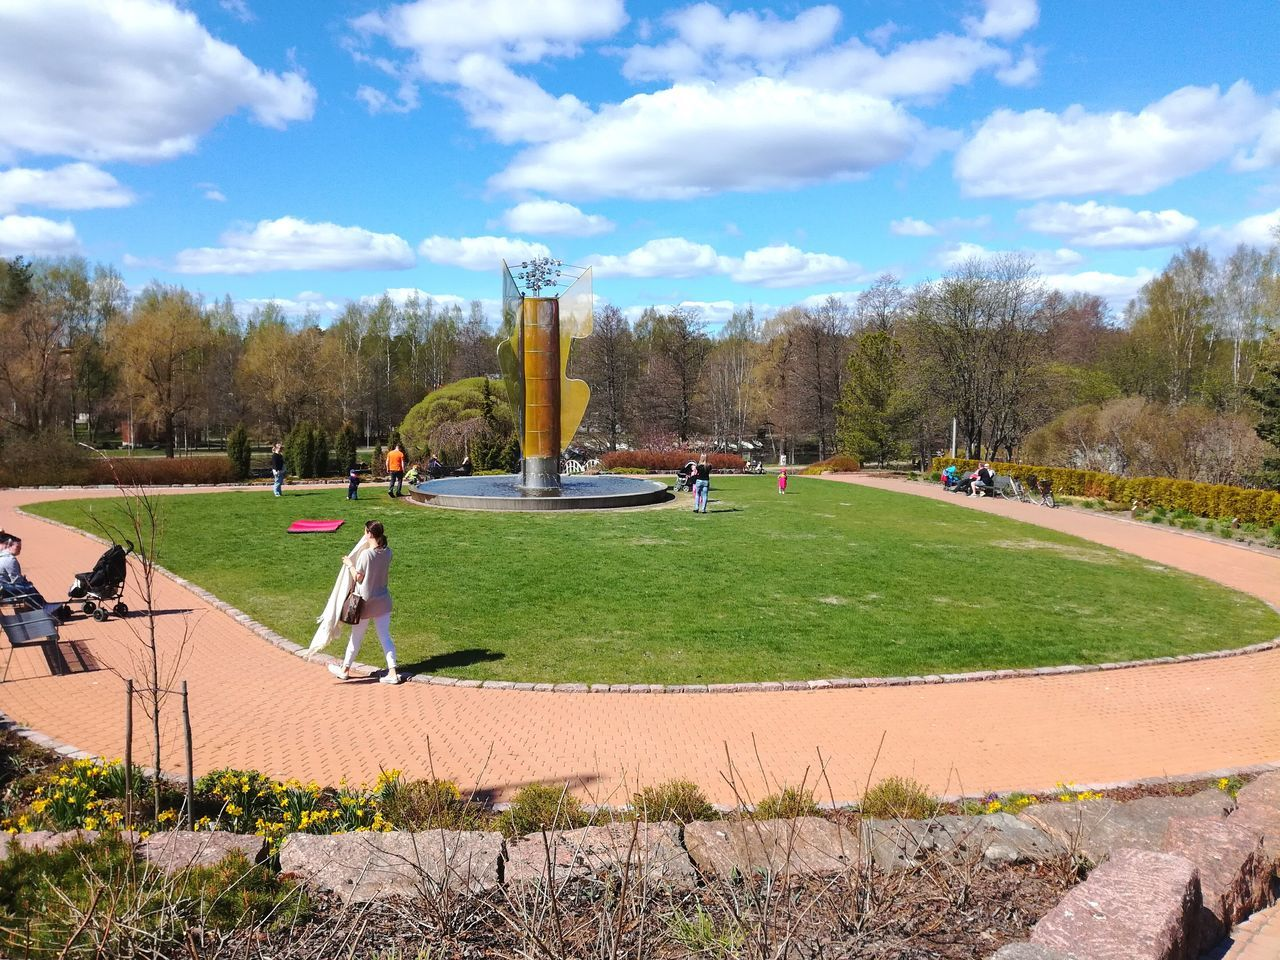 Grass Park - Man Made Space Outdoors People Photography Sunny Day Public Park Greenery Art Modern Statue Nature Finland Clouds And Sky Blue Sky White Clouds Park Life Weekend Activities Enjoying Summer Fountain Modern Art Neighborhood Map